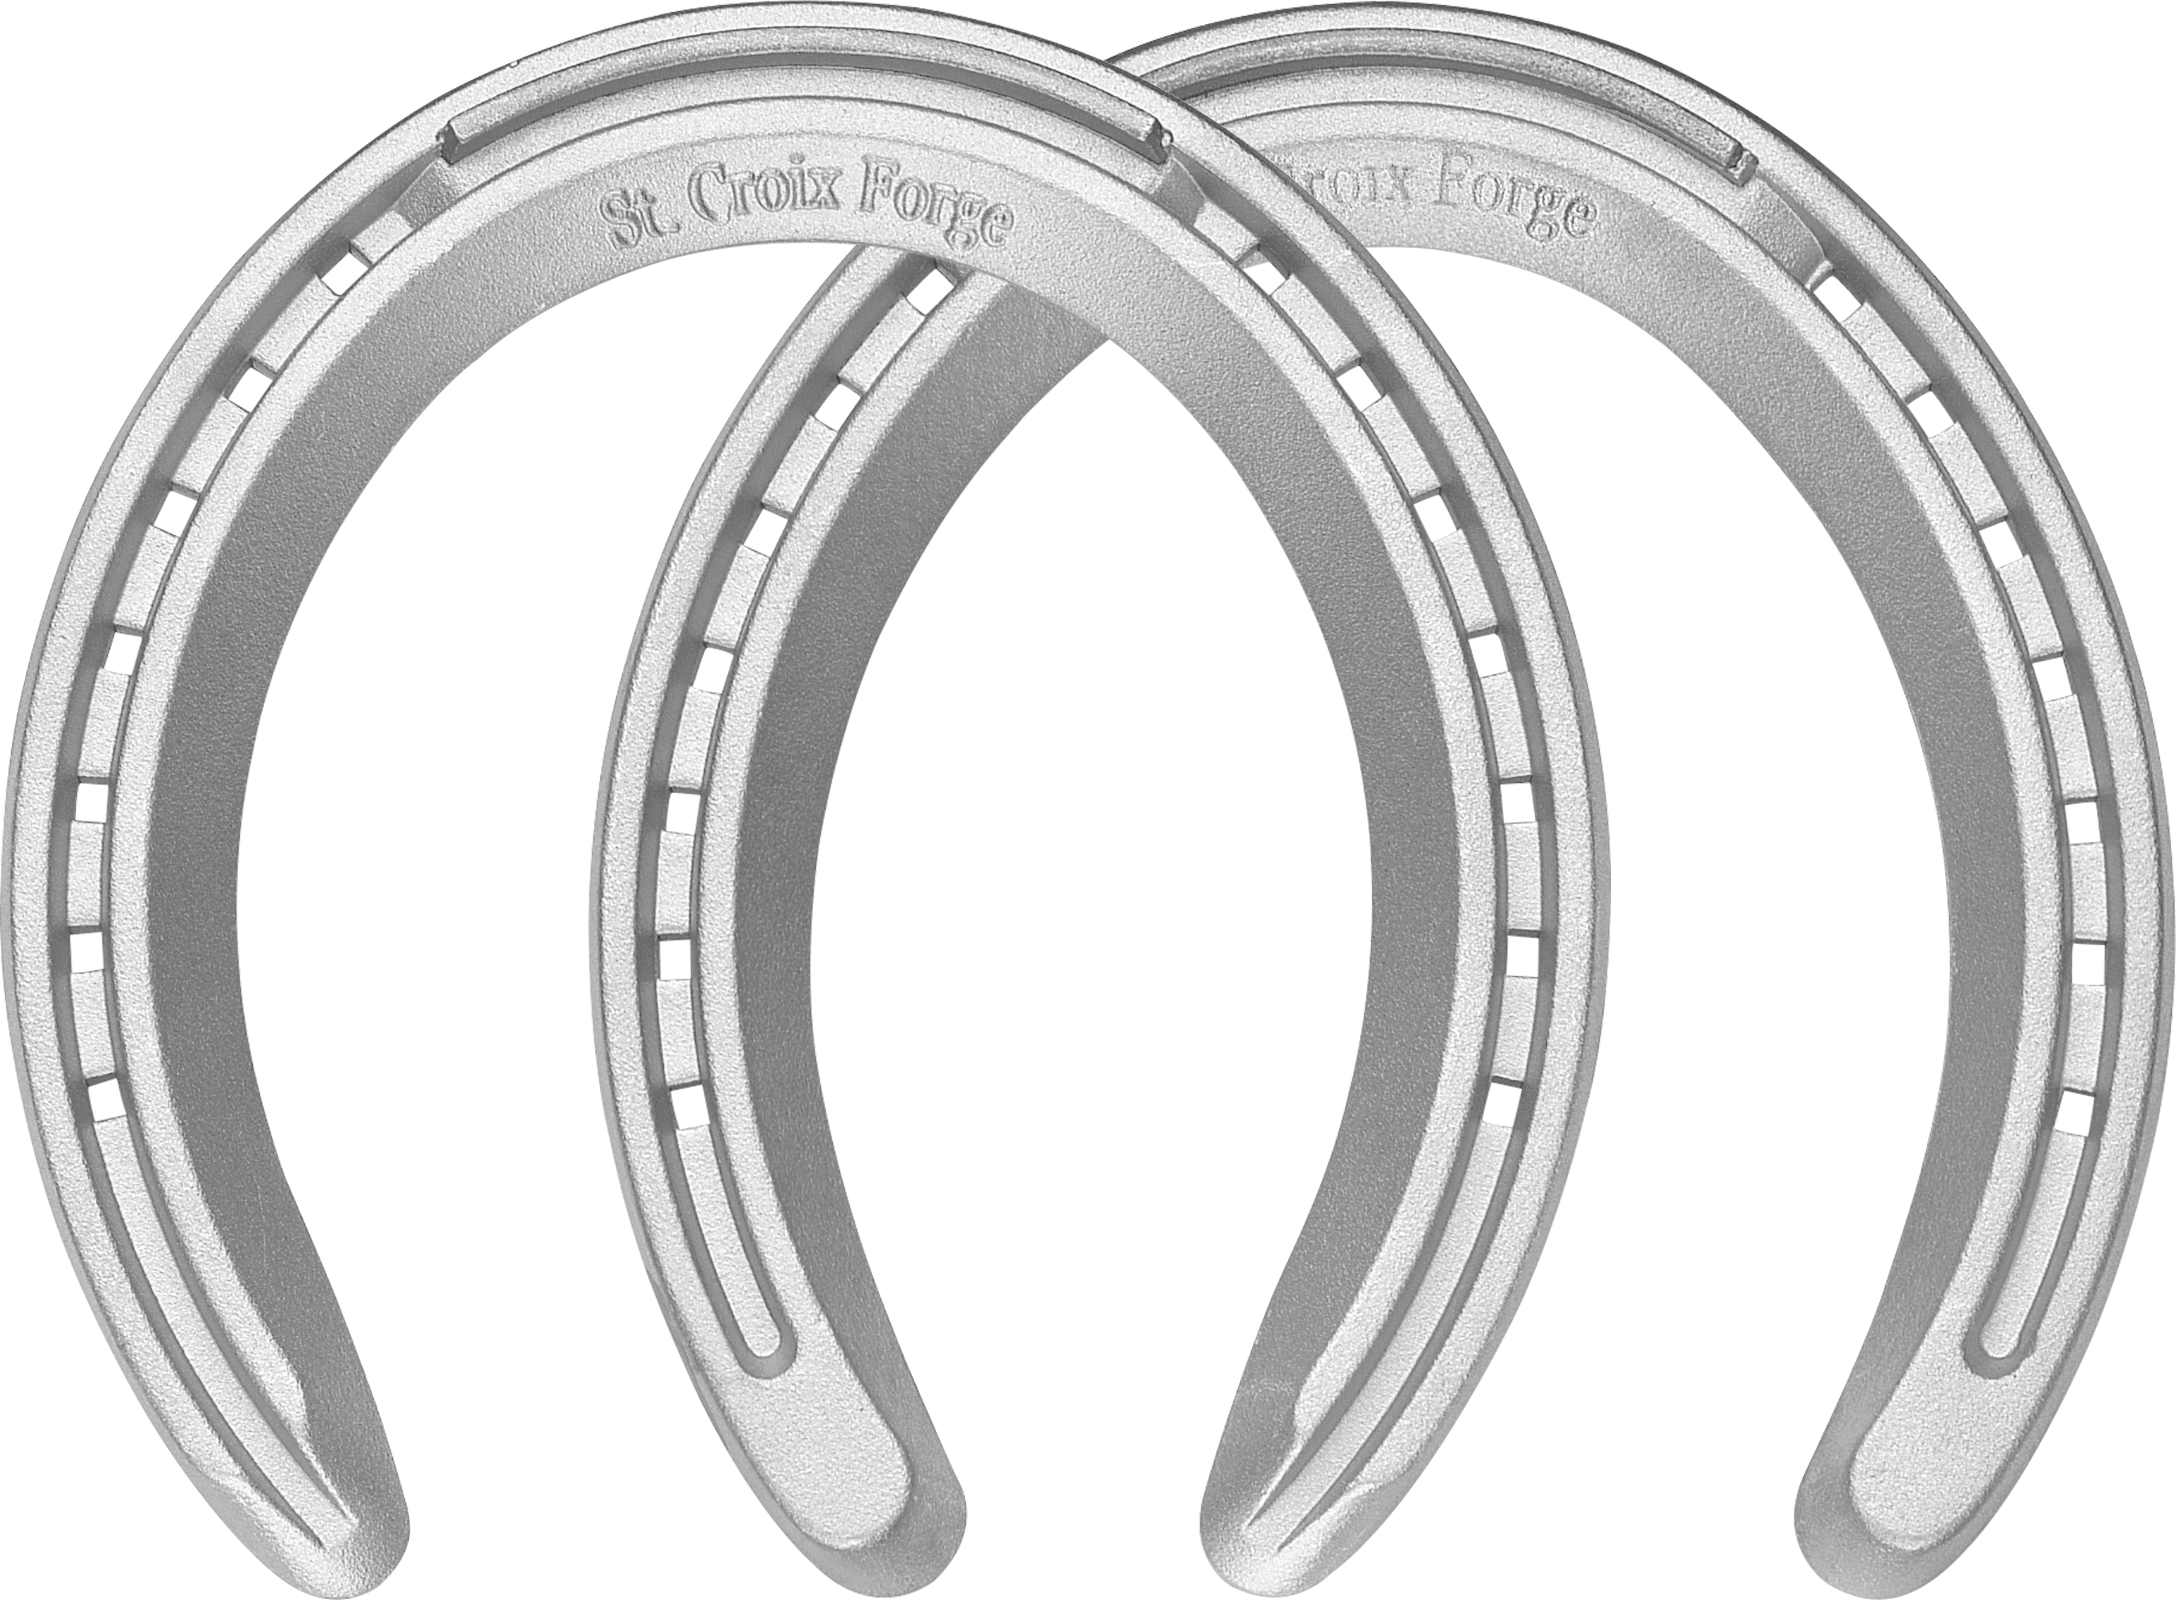 St. Croix QuarterHorse horseshoes, front and hind, bottom view